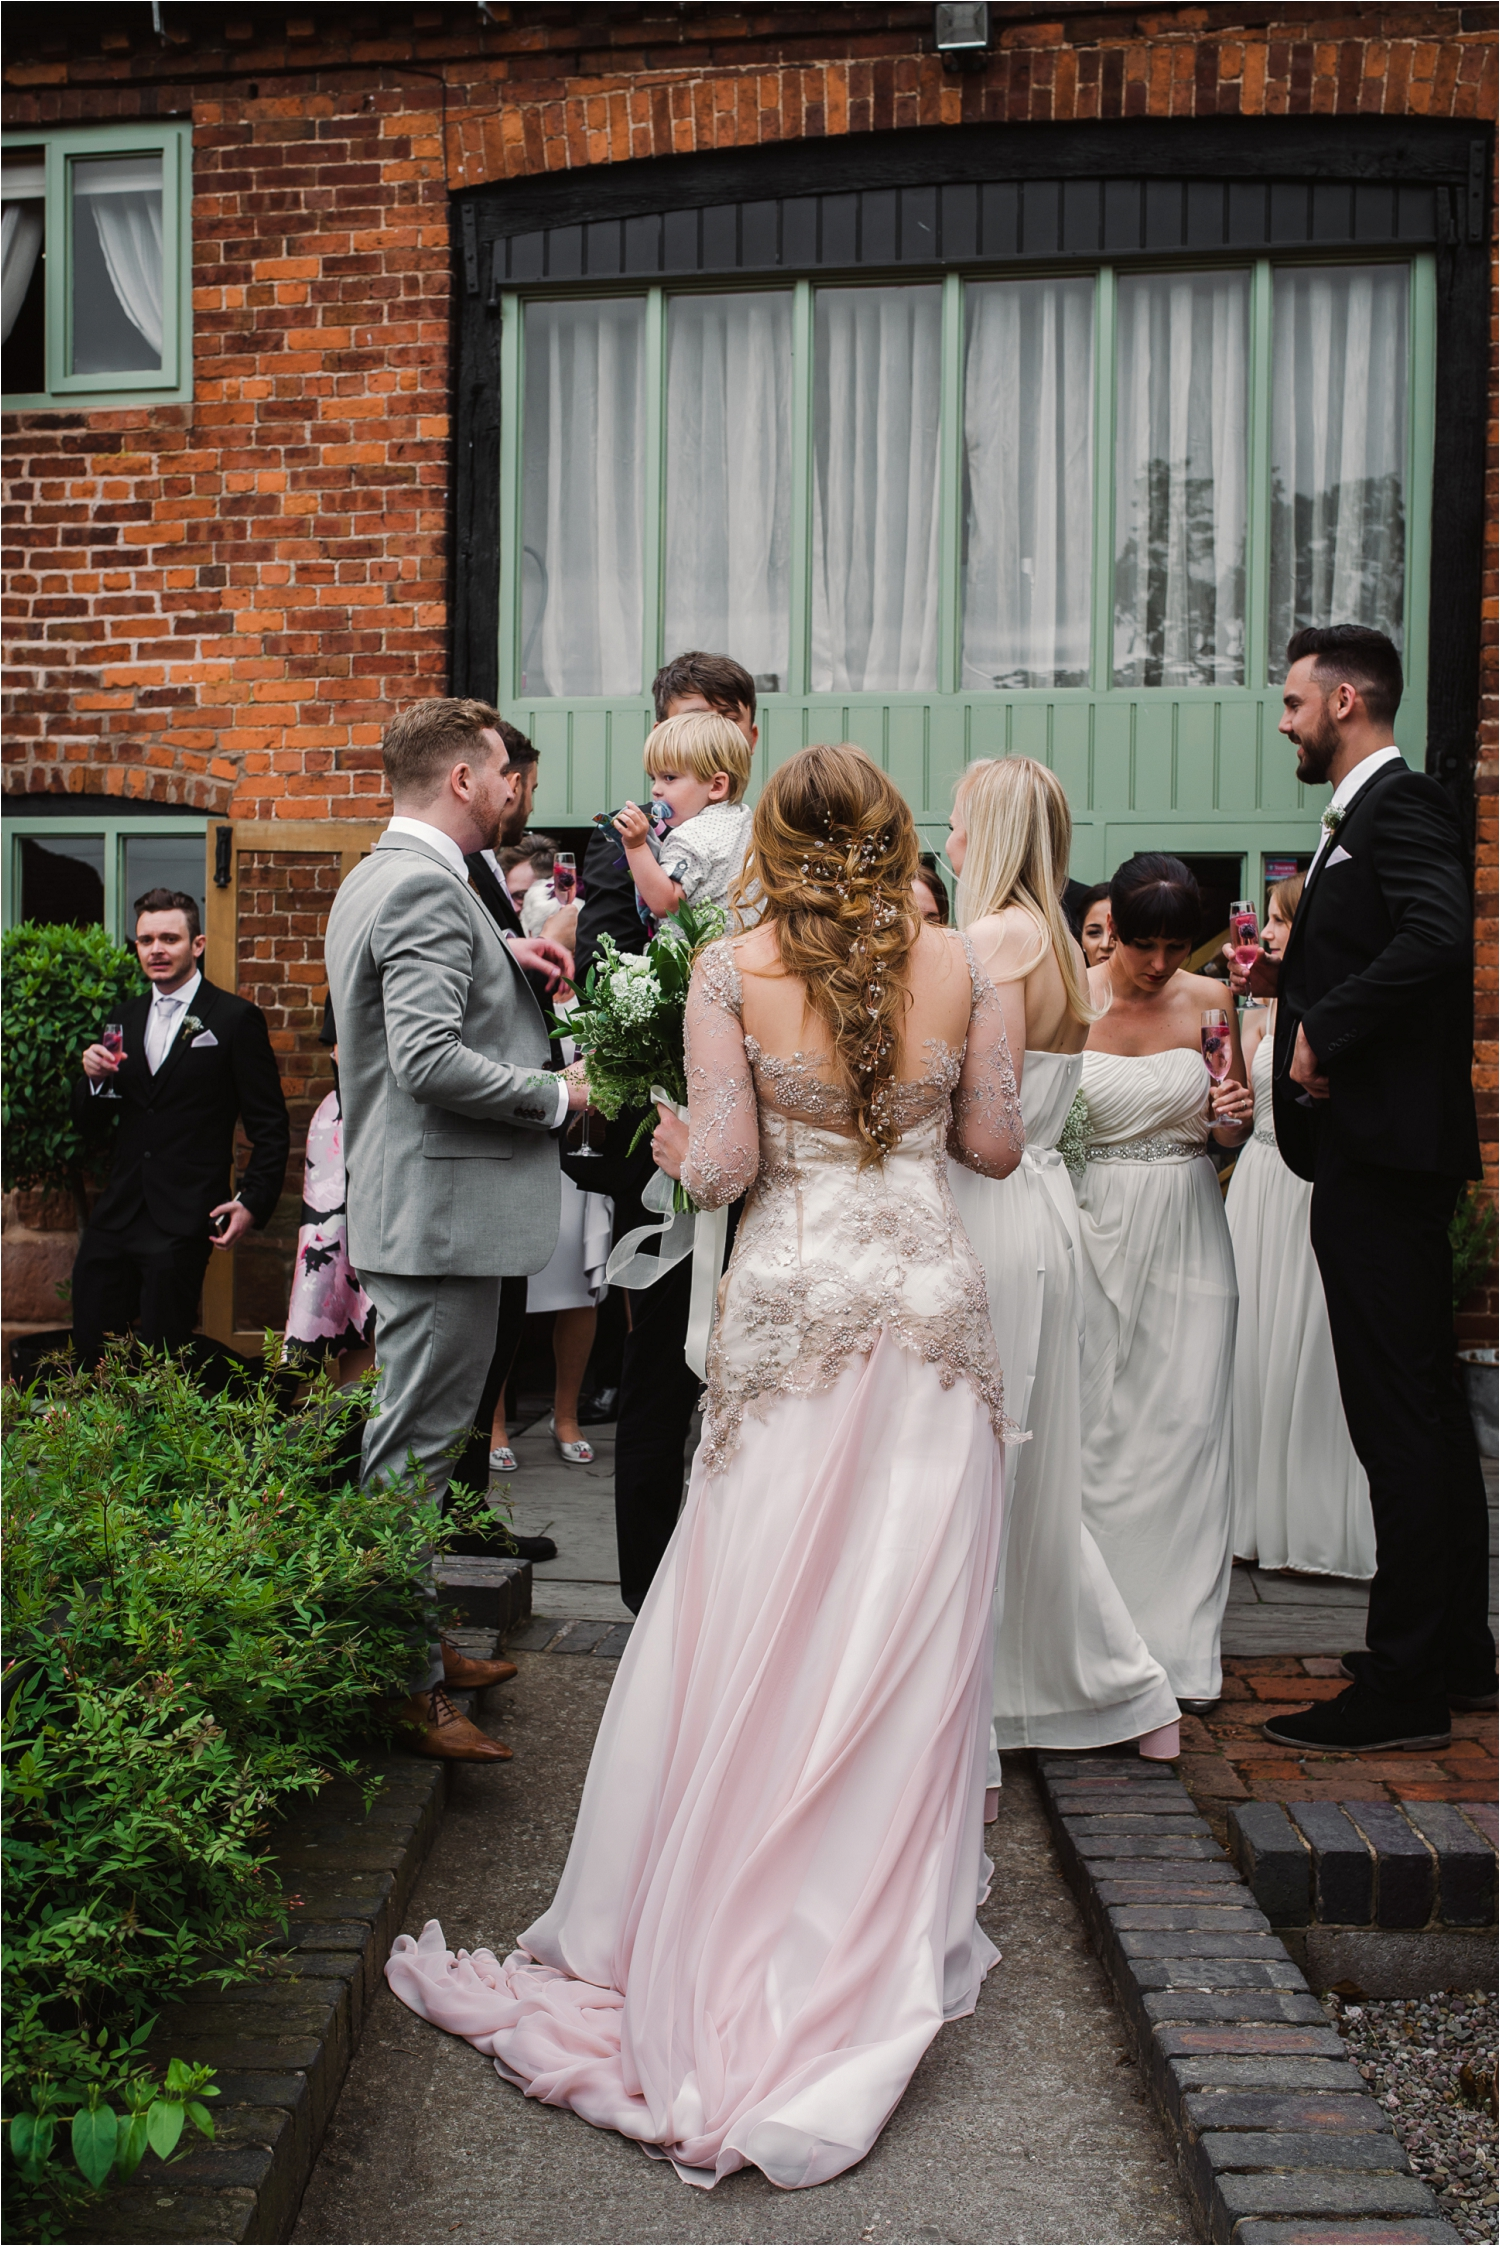 Mike_sophie_curradine_wedding_0060.jpg